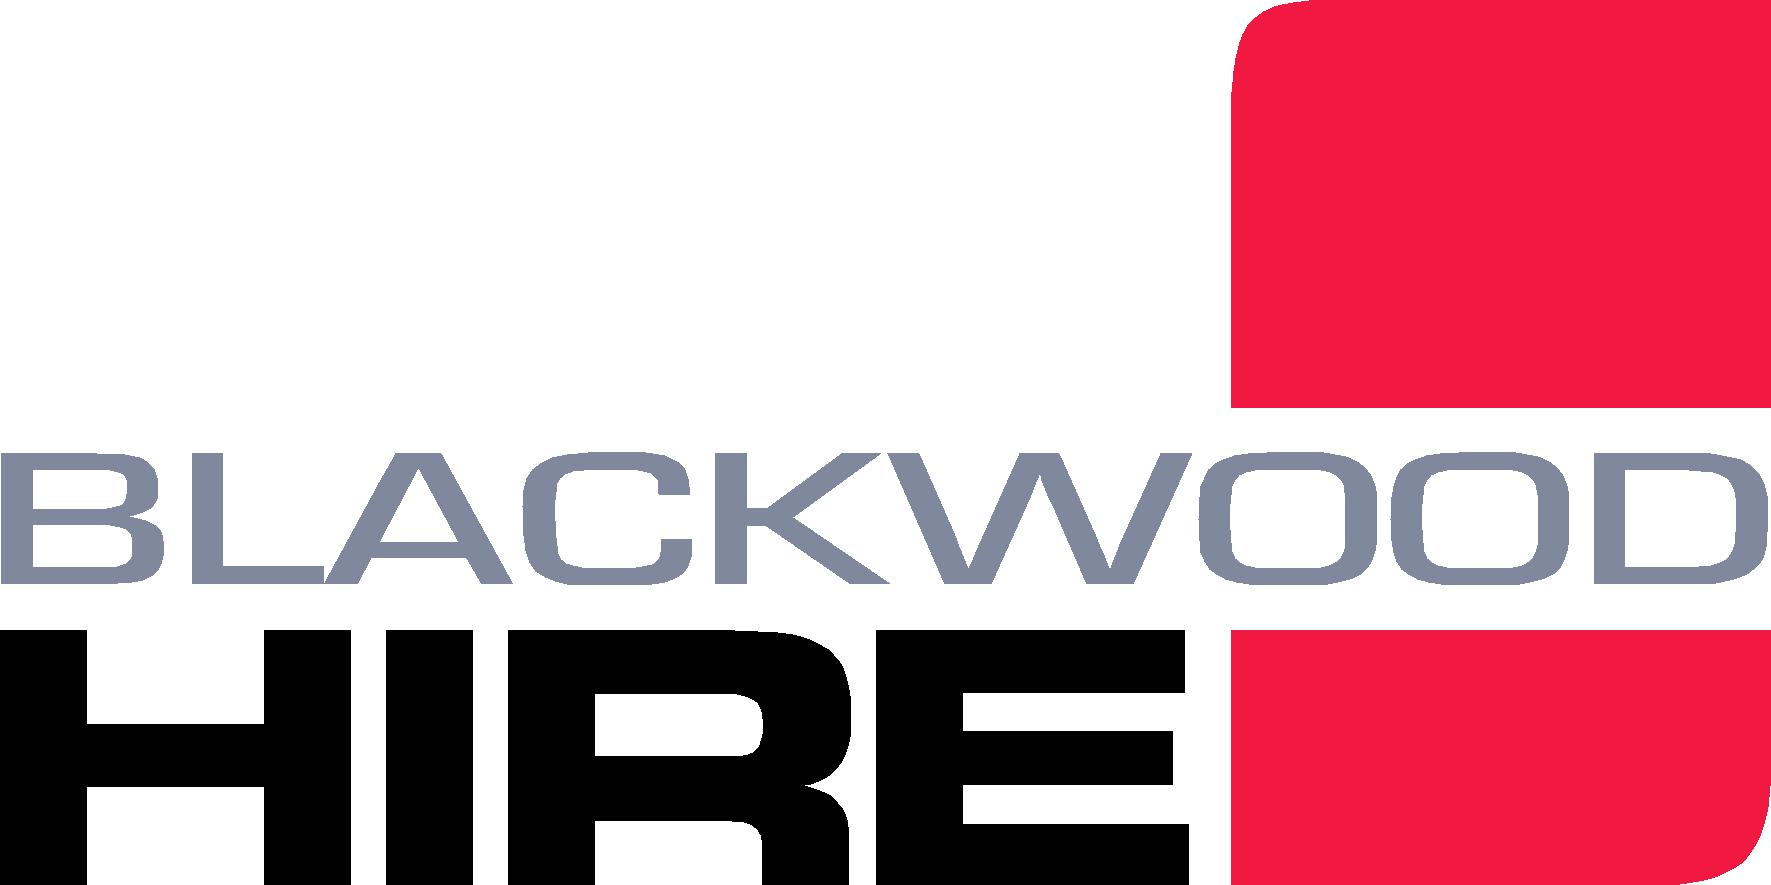 Blackwood Hire